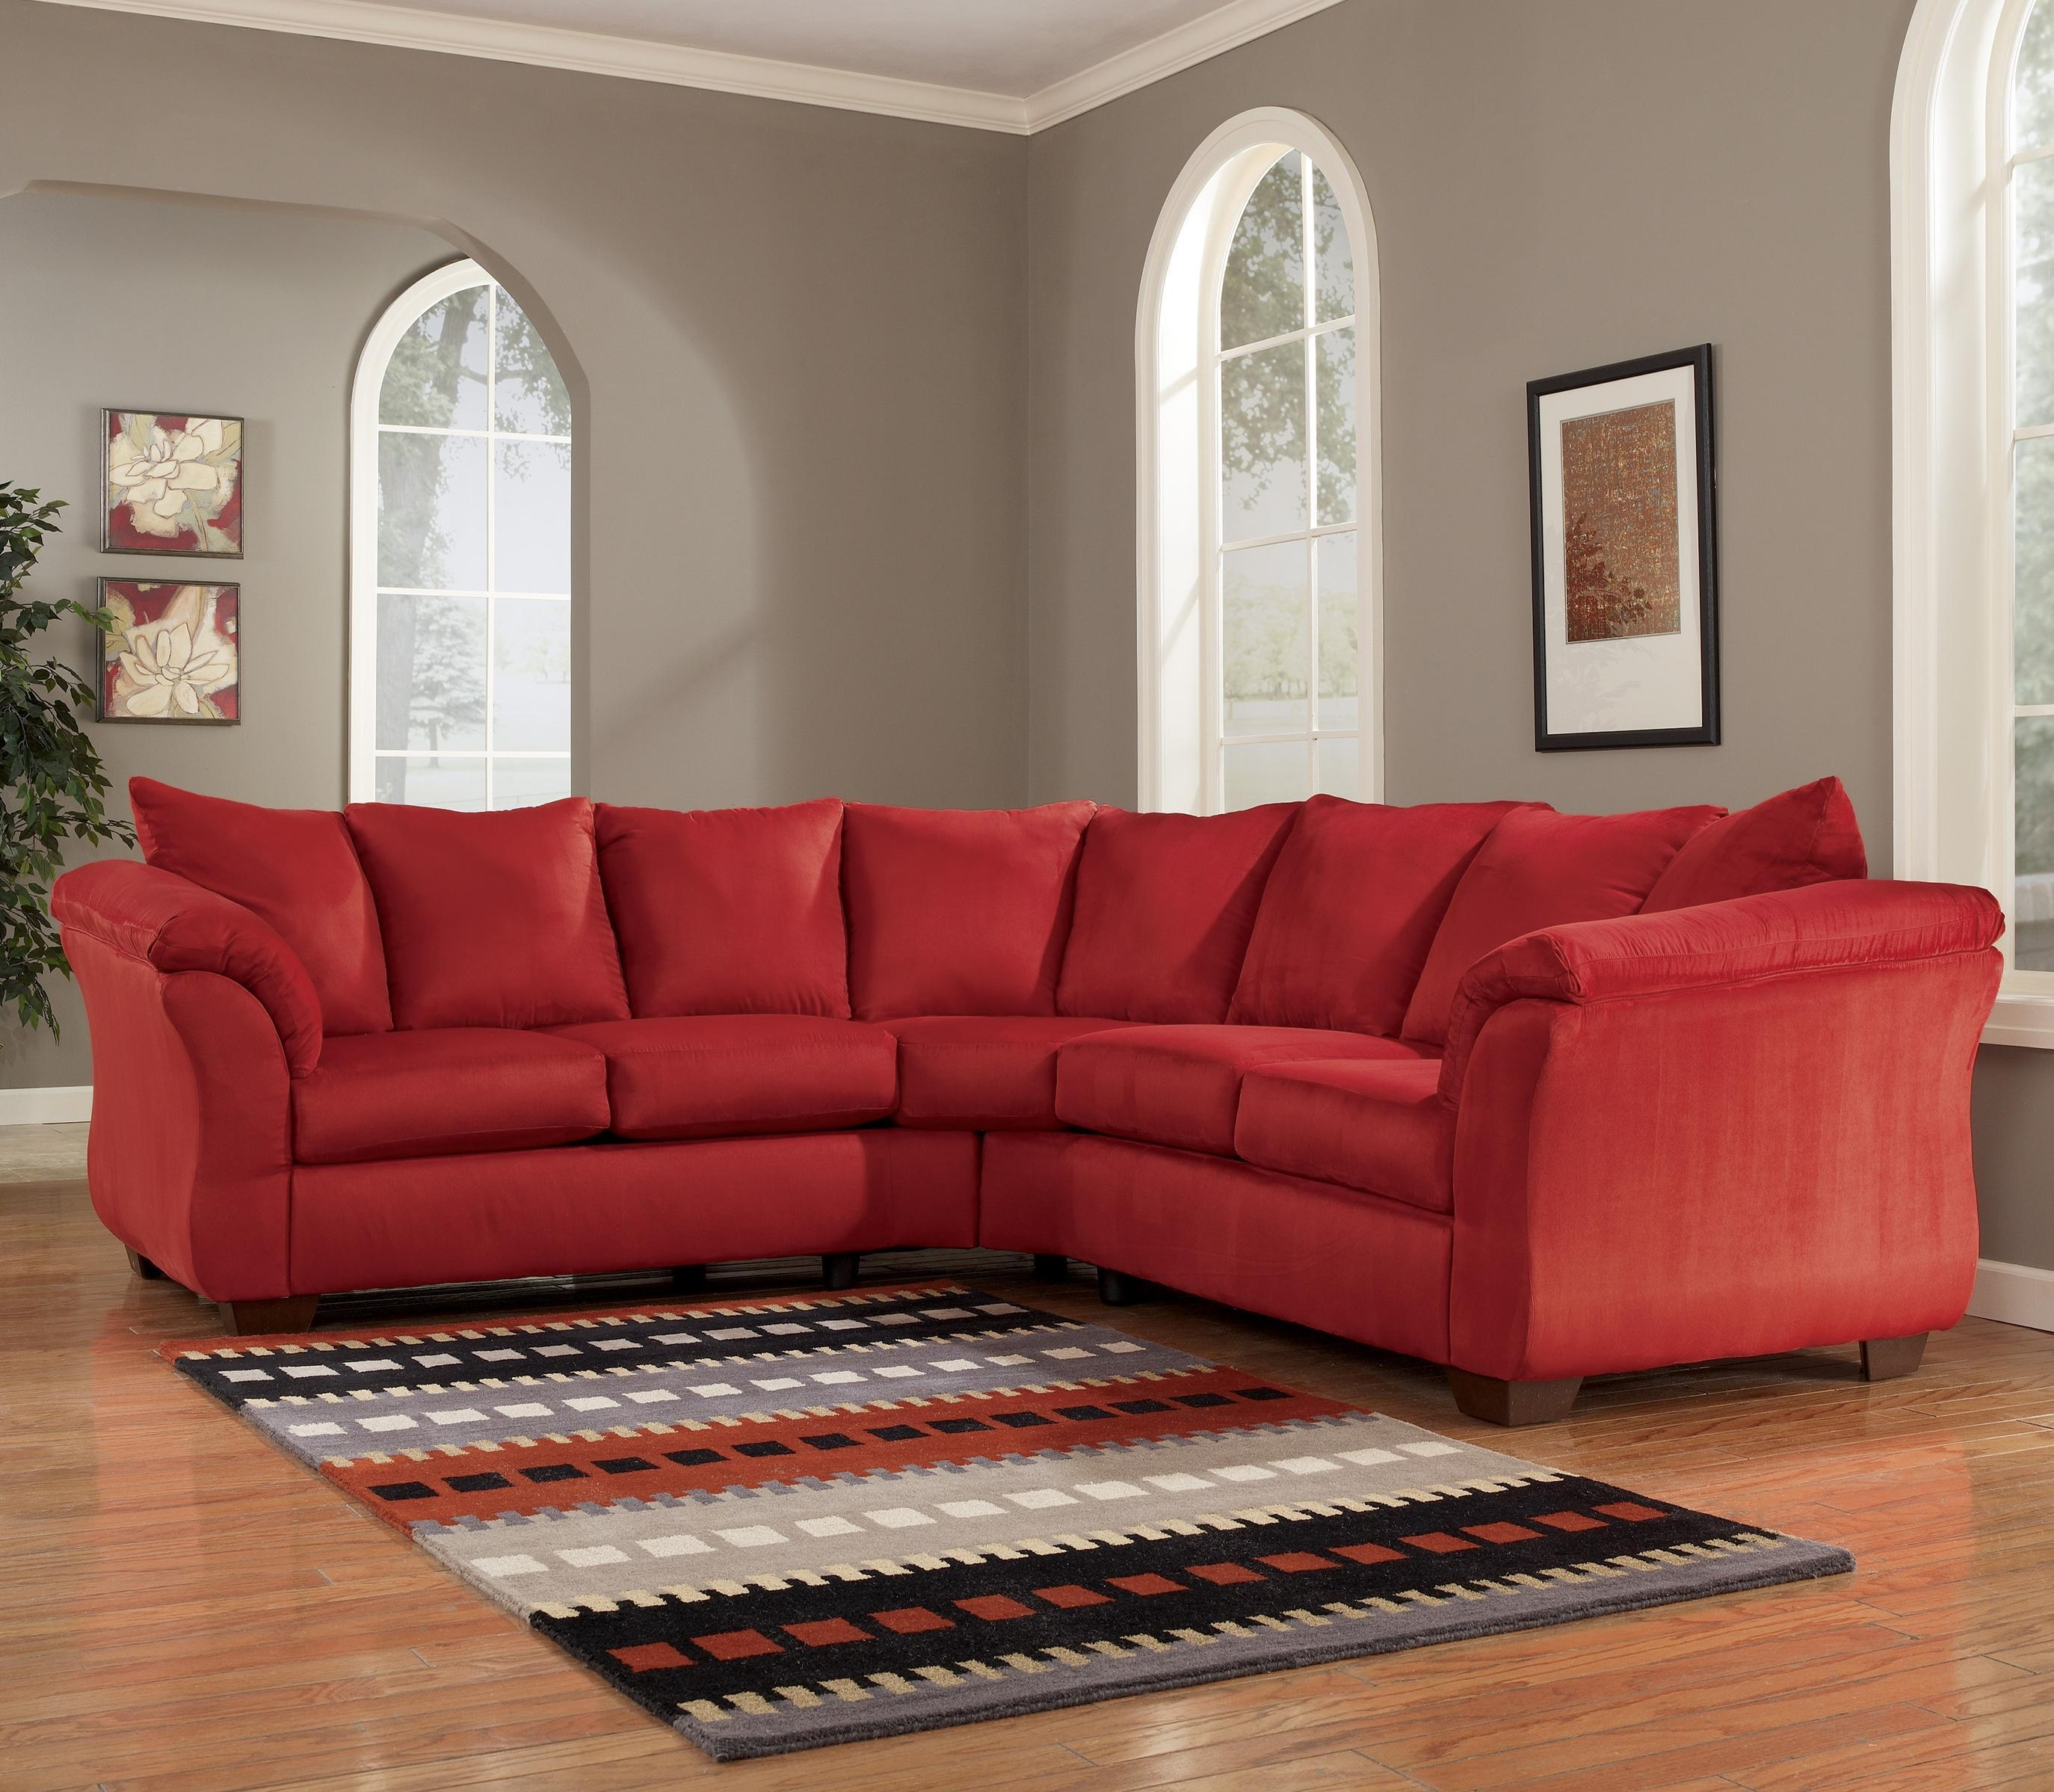 15 Collection of Ashley Curved Sectional  Sofa Ideas